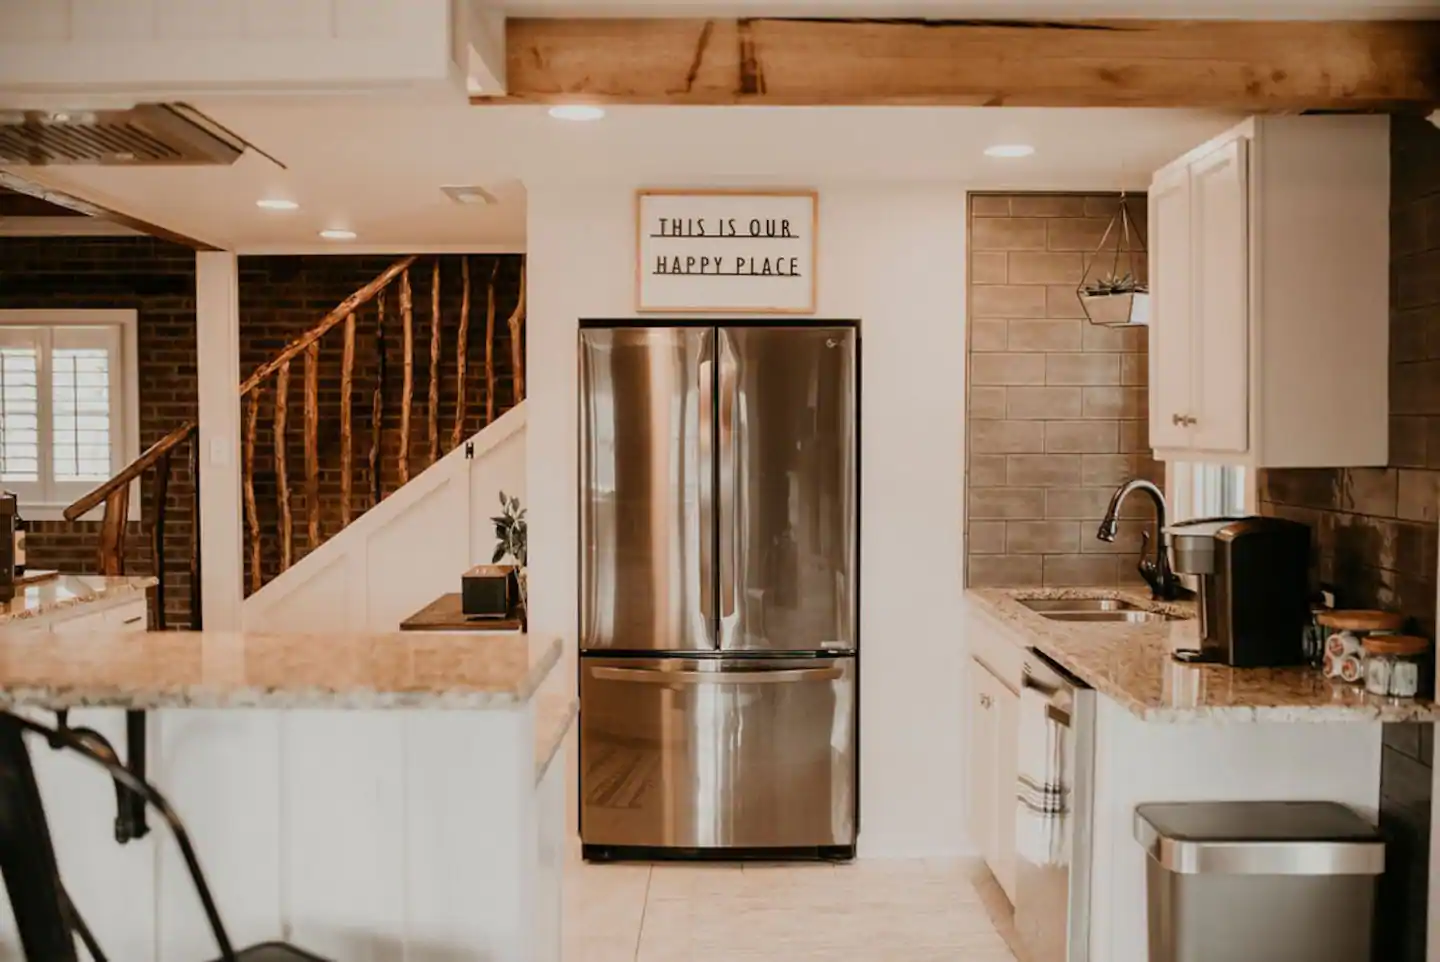 Tennessee Cider Company's Airbnb the mountain lodge kitchen